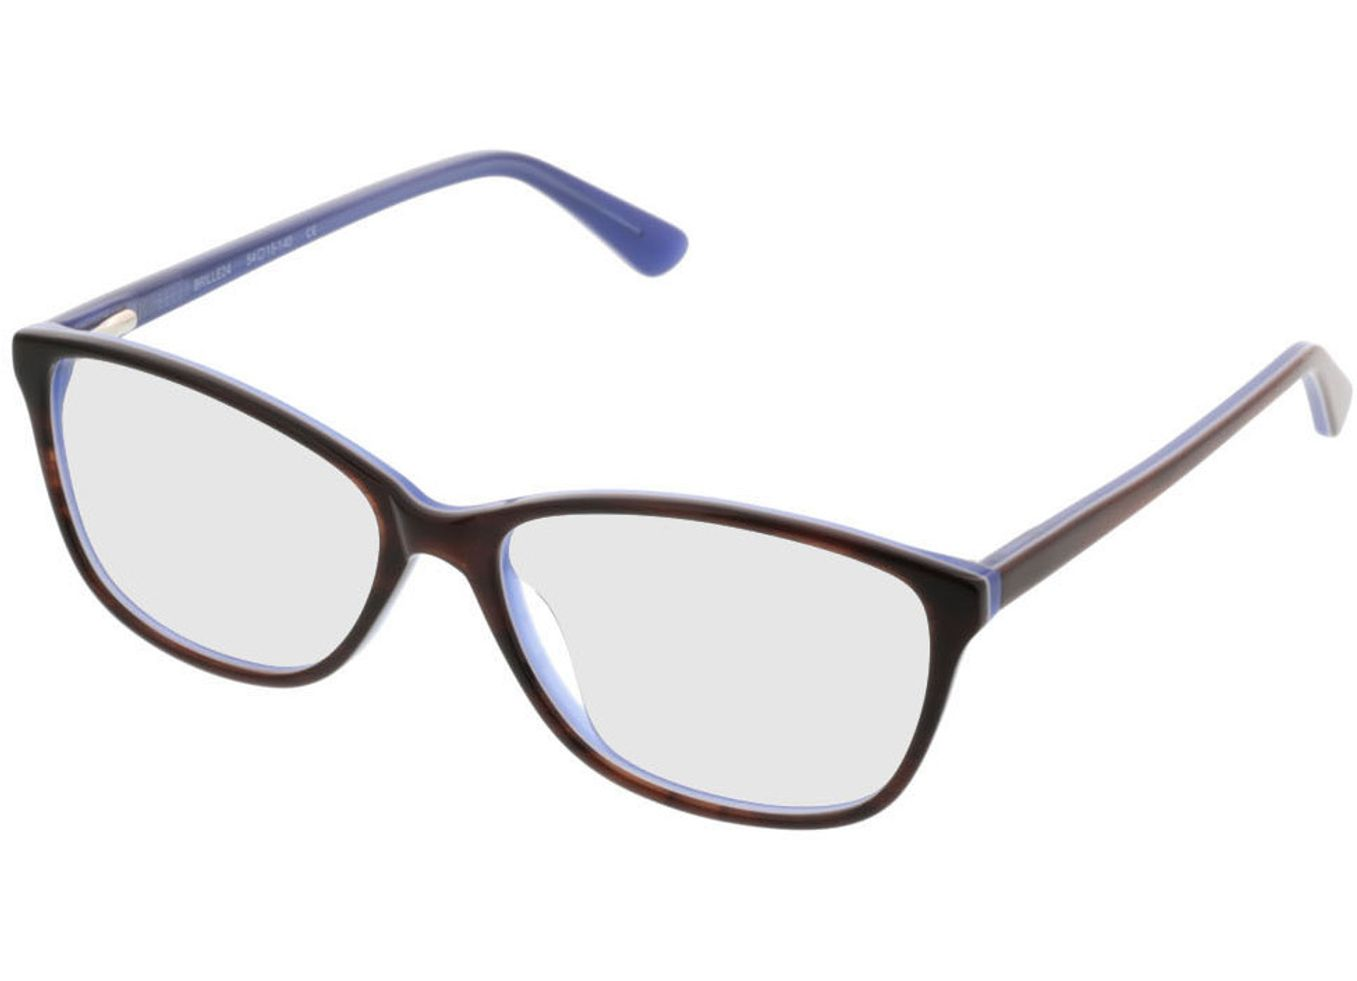 3984-singlevision-0000 Patna-braun/lila Gleitsichtbrille, Vollrand Brille24 Collection